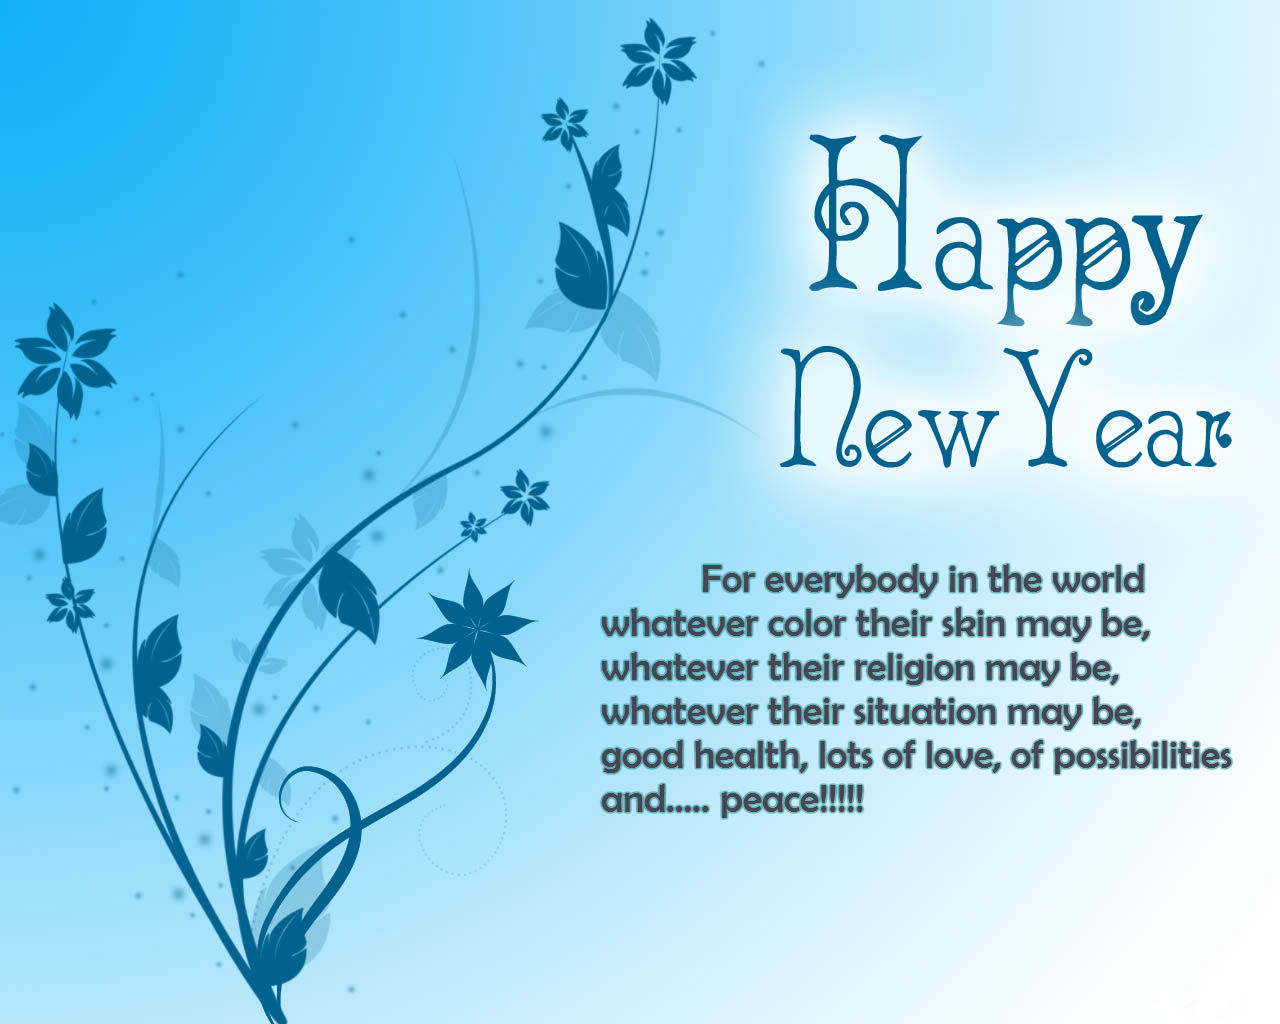 Click on Image to enlarge it. 1280 x 1024.Nhac Happy New Year 2014